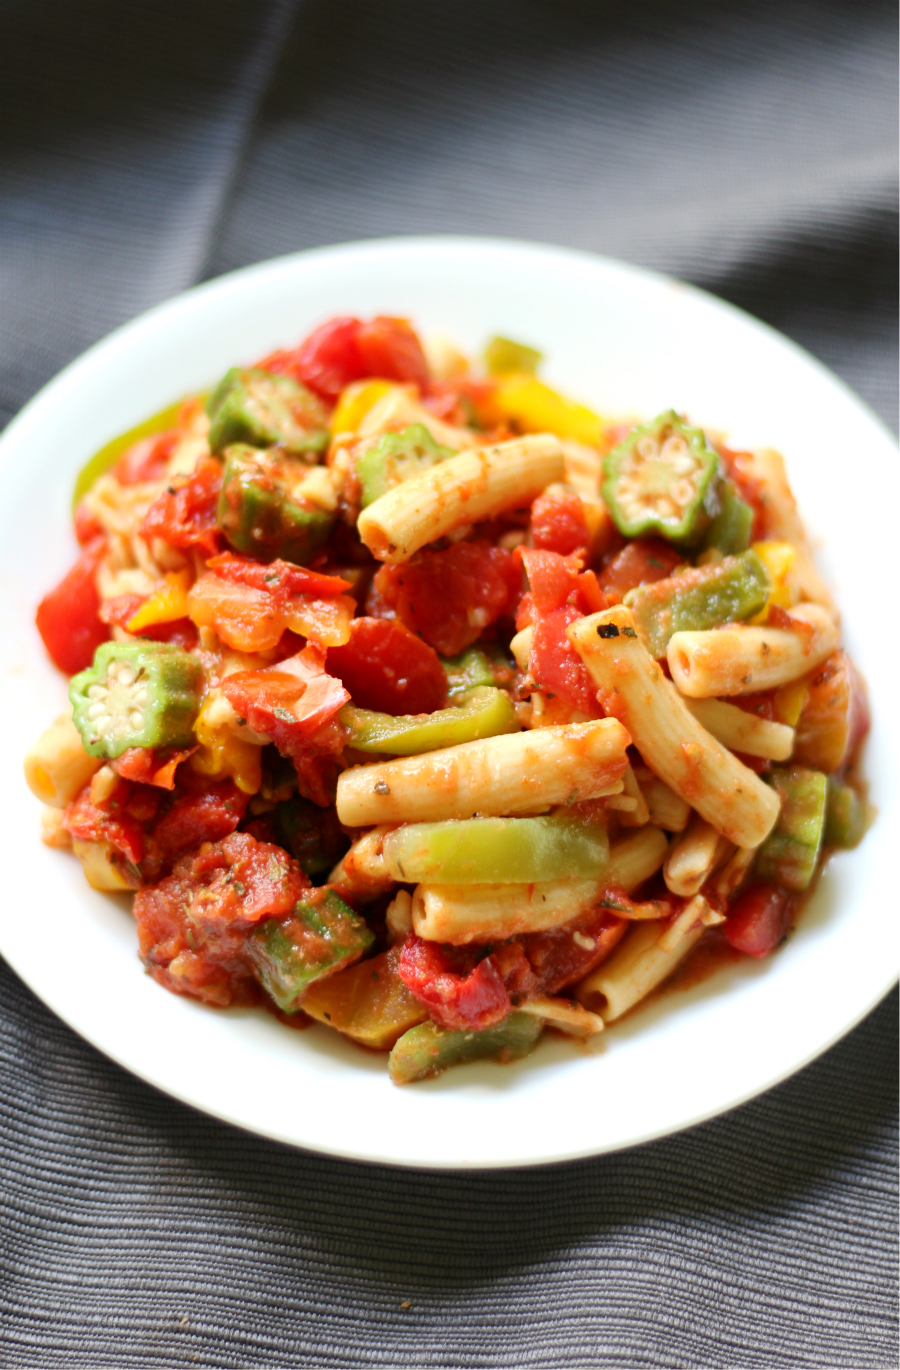 One-Pot Cajun Pasta (Gluten-Free, Vegan) | Strength and Sunshine @RebeccaGF666 An easy One-Pot Cajun Pasta dinner recipe that's allergy-free, gluten-free, and vegan! A healthy meatless dish filled with bell pepper, okra, tomatoes, and loads of flavorful spices and herbs all mixed together with your favorite pasta!